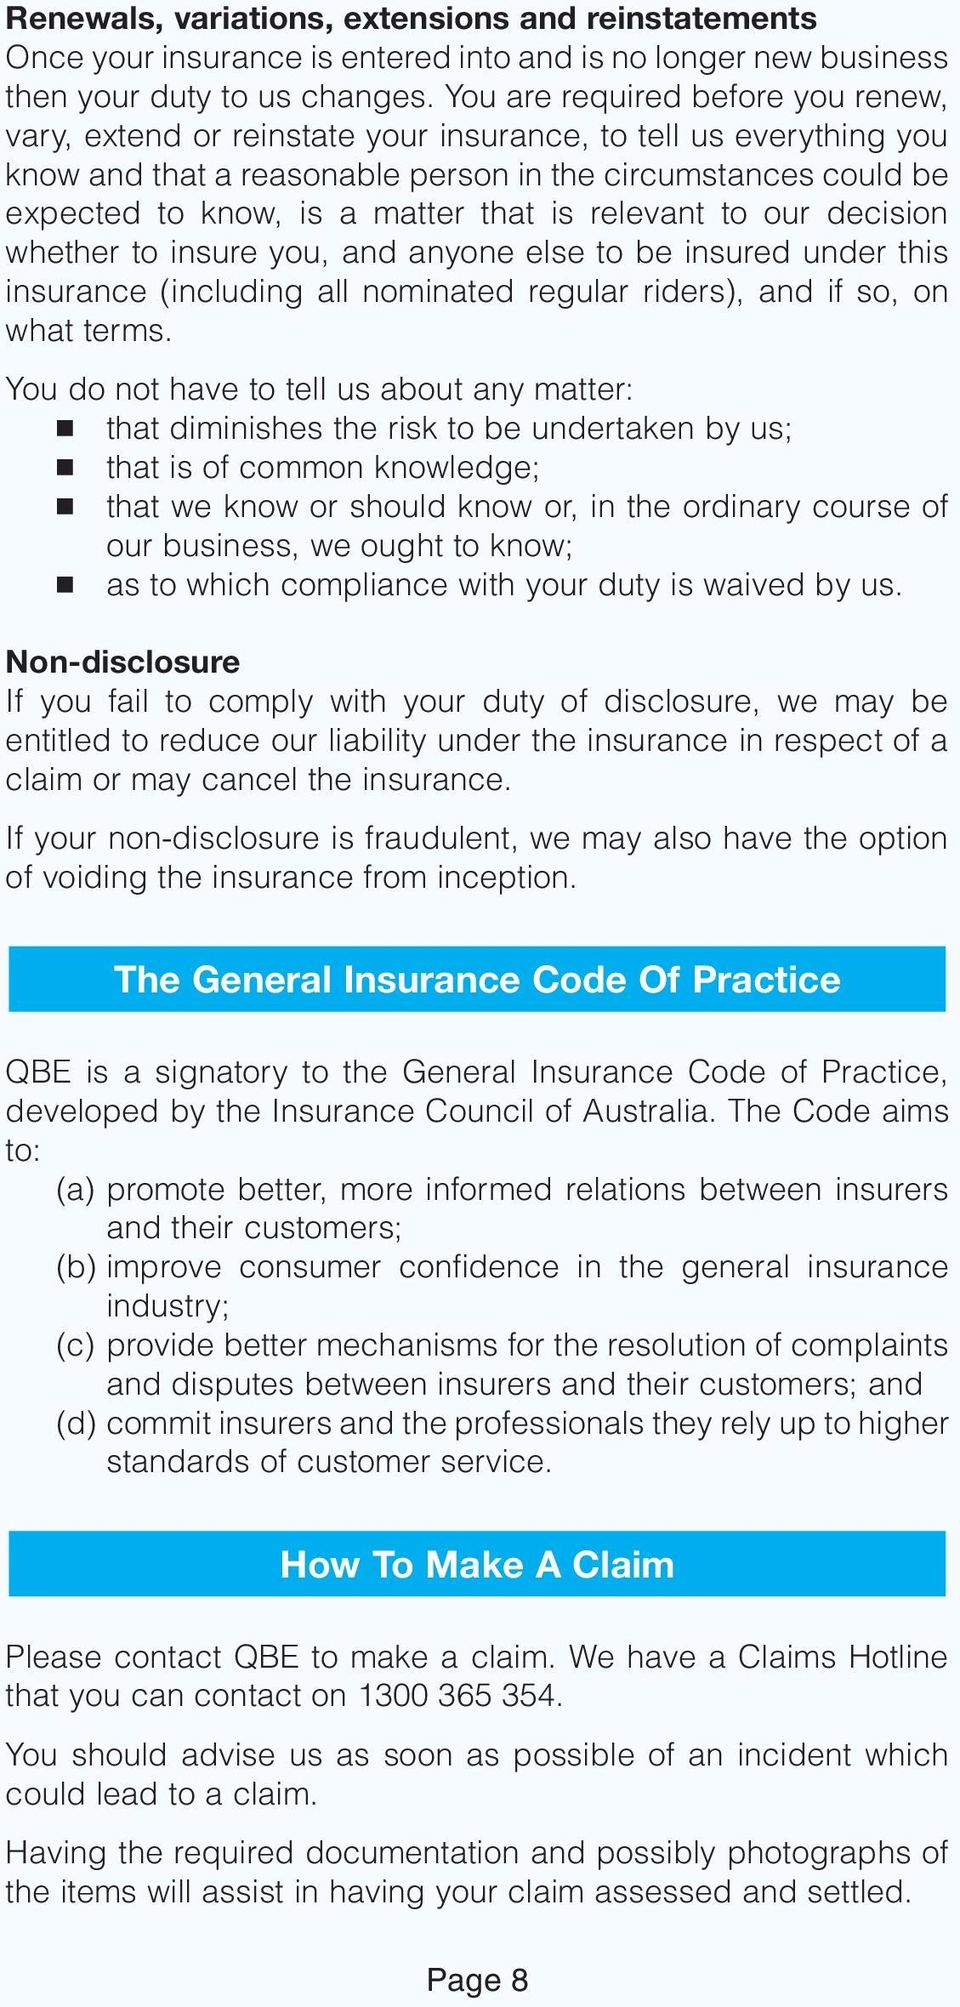 that is relevant to our decision whether to insure you, and anyone else to be insured under this insurance (including all nominated regular riders), and if so, on what terms.